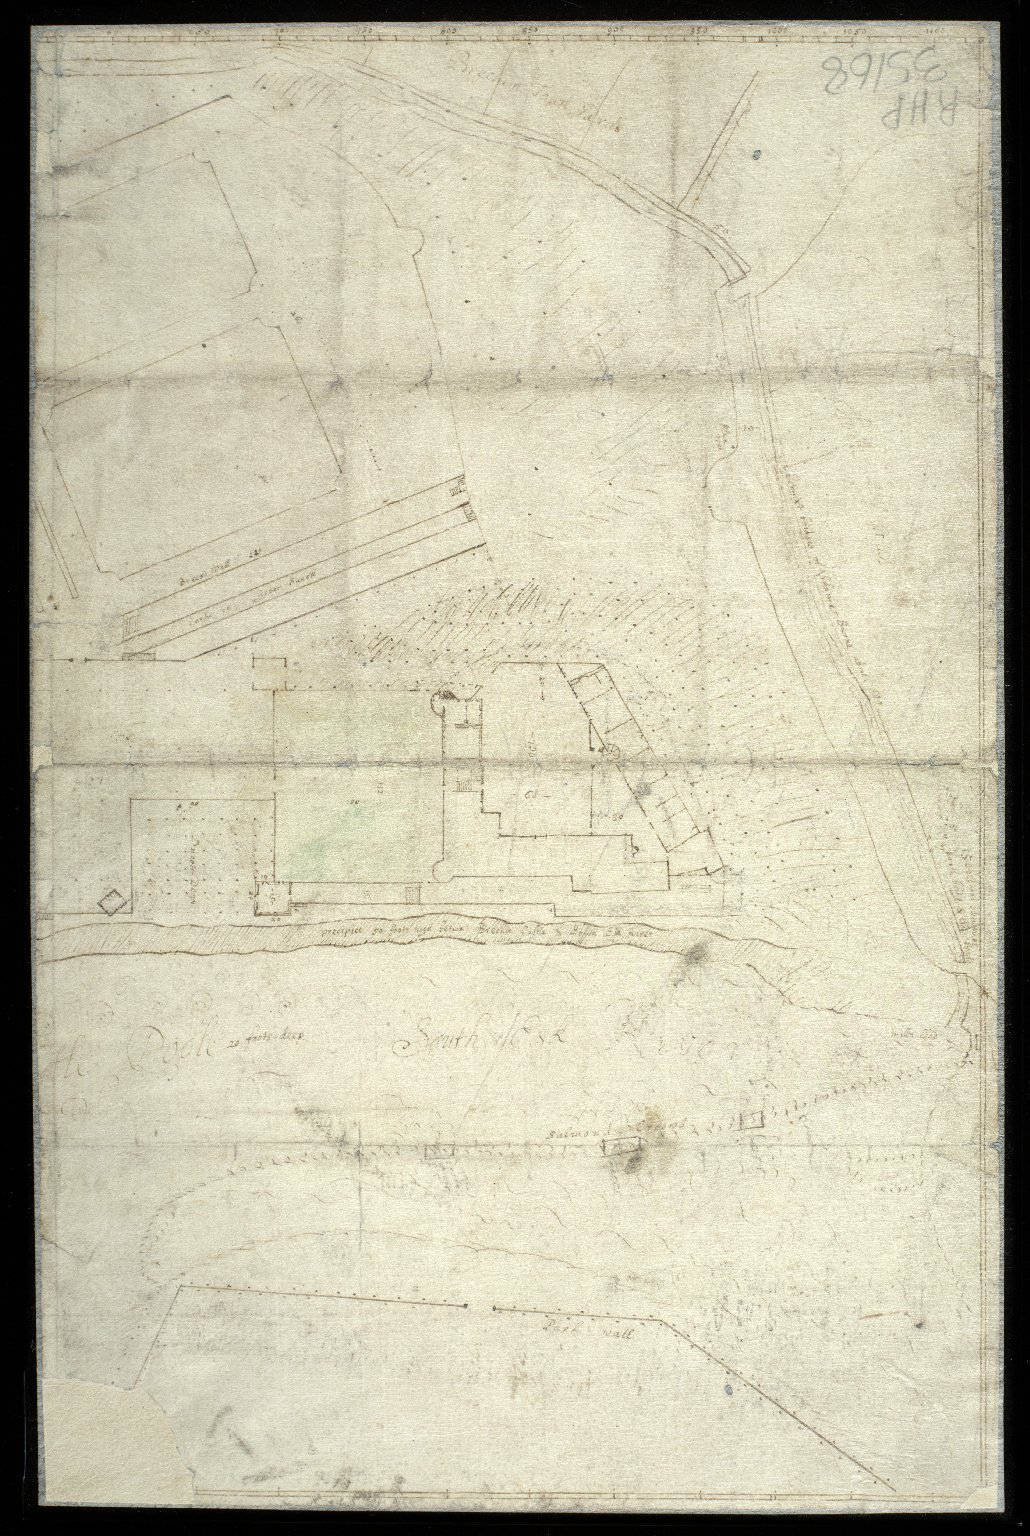 Sketch plan of Brechin Castle with South Esk river, and Skinner's Burn with the Town Yards of Brechin [1 of 2]